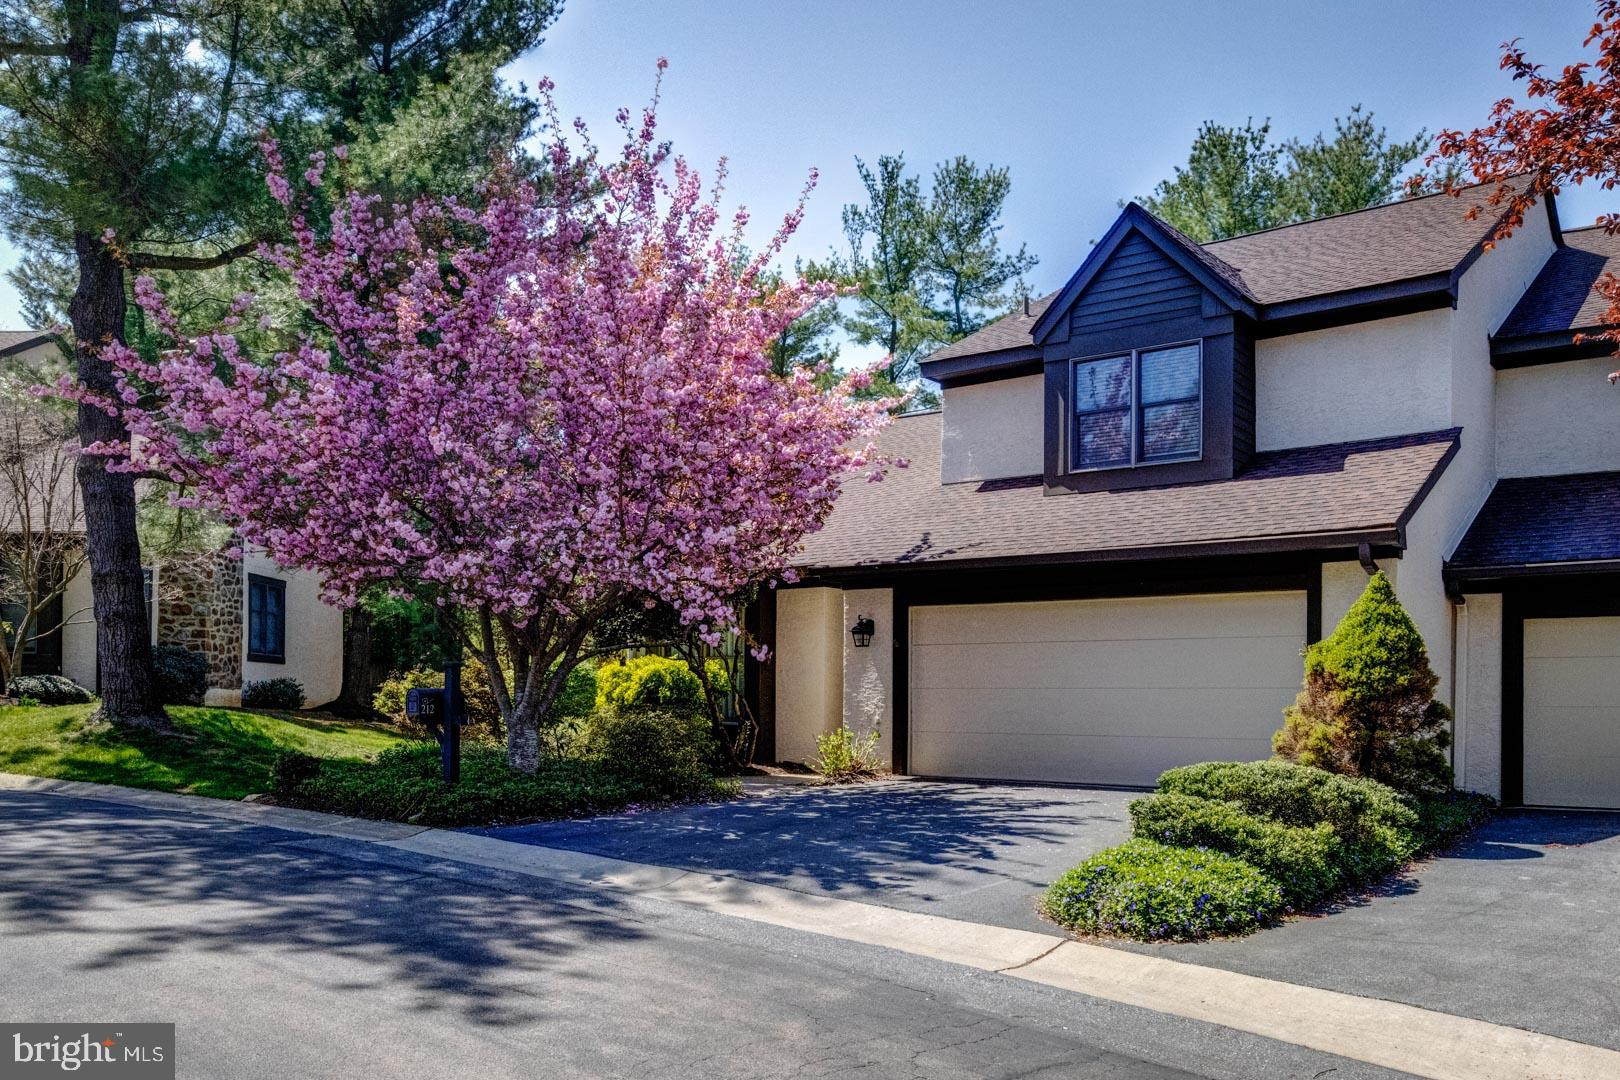 """Have you been waiting for that """"Perfect"""" Spacious Open Floor Plan Townhome in Chesterbrook?  Here it is!  Desirable Carriage House at The Ponds in Chesterbrook * End Home with Walk-Out Lower Level * 4-Bedroom/3-1/2 Baths * Lower Level has Full Bath * 2 Wood-burning  Fireplaces in Living Room and Great Room on Main Level *  Greenhouse off Dining Area * Beautifully Gleaming Hardwood Floors on all 3 Levels * 2 Newly Renovated Baths Upstairs done in Marble and Ceramic Tile  * Main Bedroom/Full Bath Suite with Soaking Tub and Walk-in Closet * Plantation Shutters in one Bedroom * Updated Kitchen with Oak Cabinets and Granite Countertops with Garden window * Gas Cooking * Stainless Steel Refrigerator is included * Oversized Deck off Main Level and Patio off Lower Level Finished Space * Finished 2-Car Garage/walls have just been freshly painted * Lots of built-in Shelving * Landscaping is very well kept with many plantings especially Butterfly Bushes and Hydrangea * Total Living Space Square Footage including Lower Level  is:  2712 SF (+/-) * Interior Photos are in progress * Exterior Photos were taken in the Spring to illustrate the gorgeous  Cherry Blossoms * Home is staged and professionally photographed  * This Carriage Home is one of the largest in The Ponds with the Walk-Out Lower Level * Excellent Location in the Complex * T-E Schools * Showings will begin Tuesday, July 20 * First Open House will be held Tuesday, July 20 from 11 AM to 3 PM.  Open House Saturday, July 24 is Cancelled."""